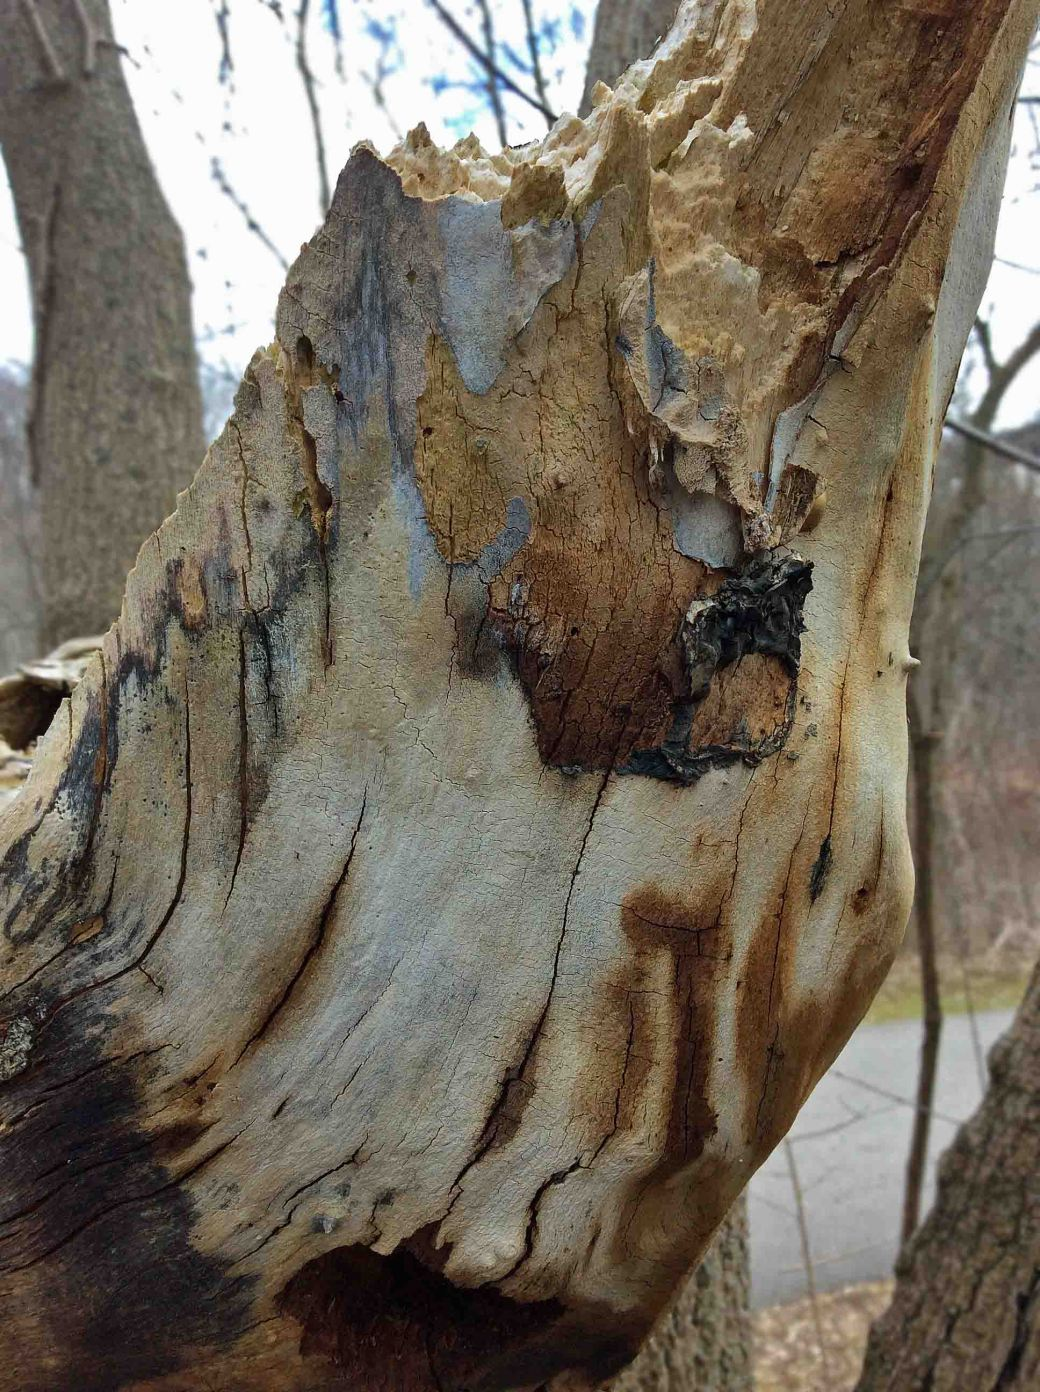 AshTree decaying-EastDonRiver